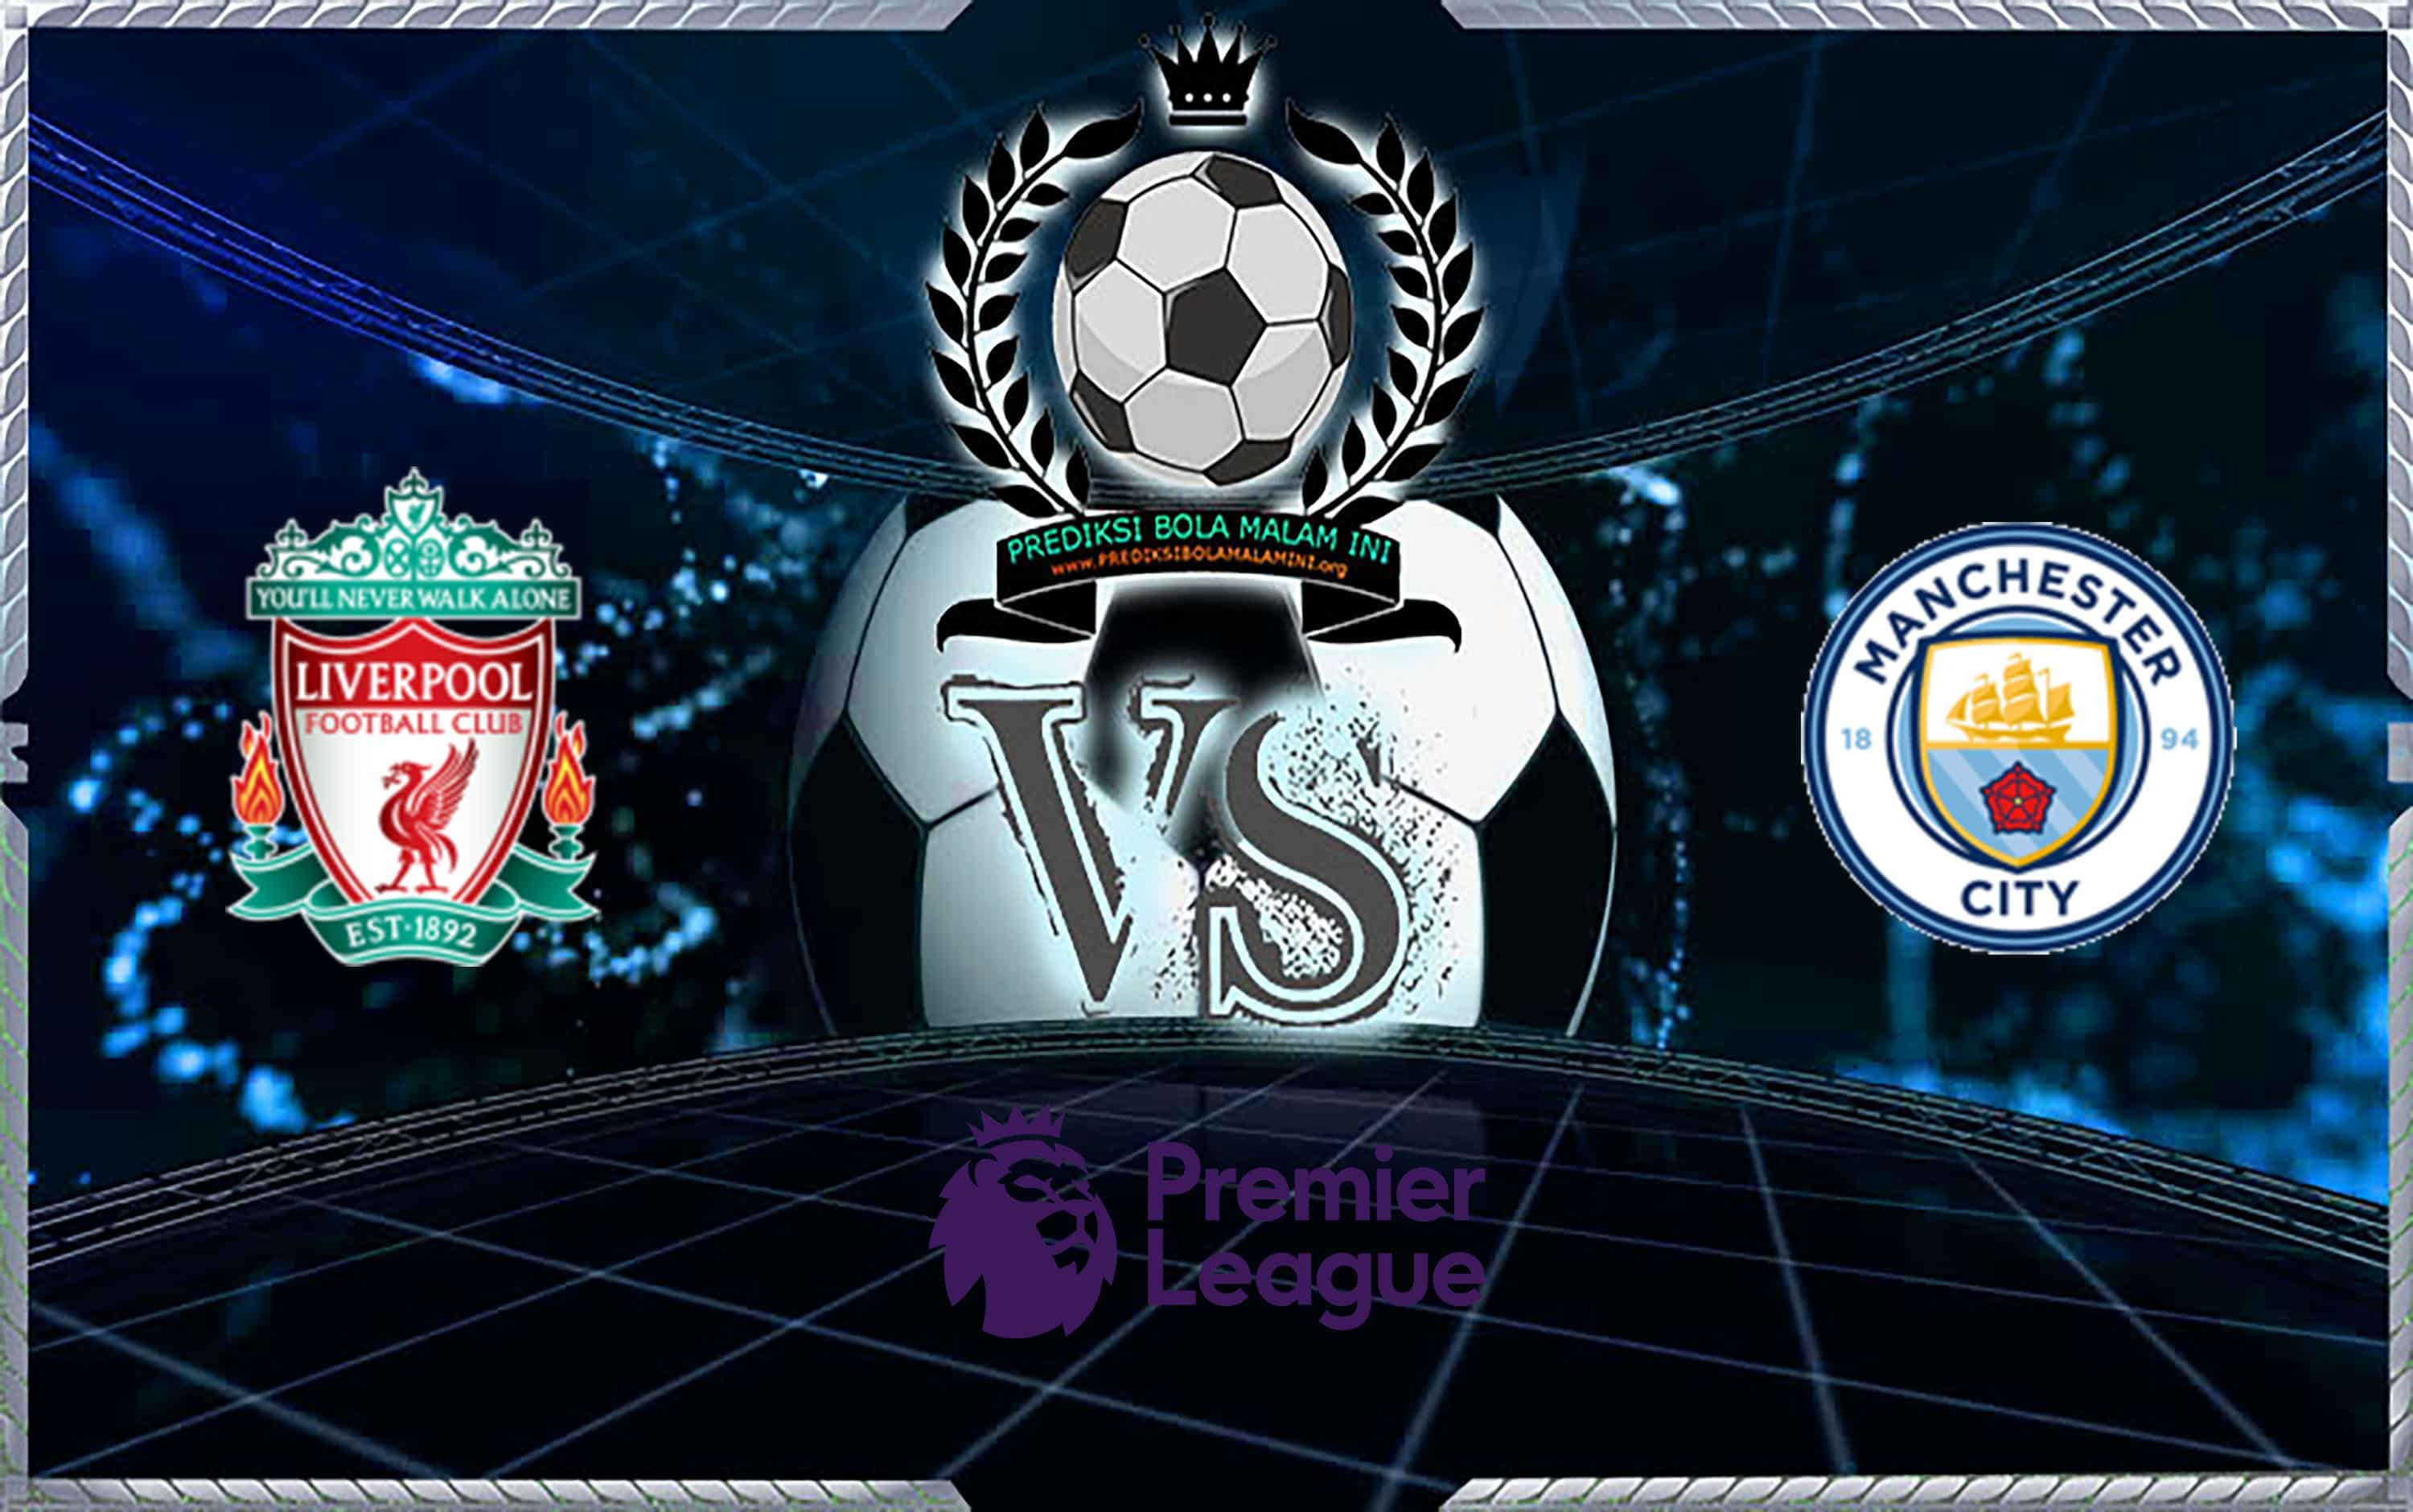 "Sepatu Prediksi Liverpool vs Manchester City 11 Oktober 2019 ""width ="" 3000 ""height ="" 1880 ""/> </strong> </p> <p> <span style="